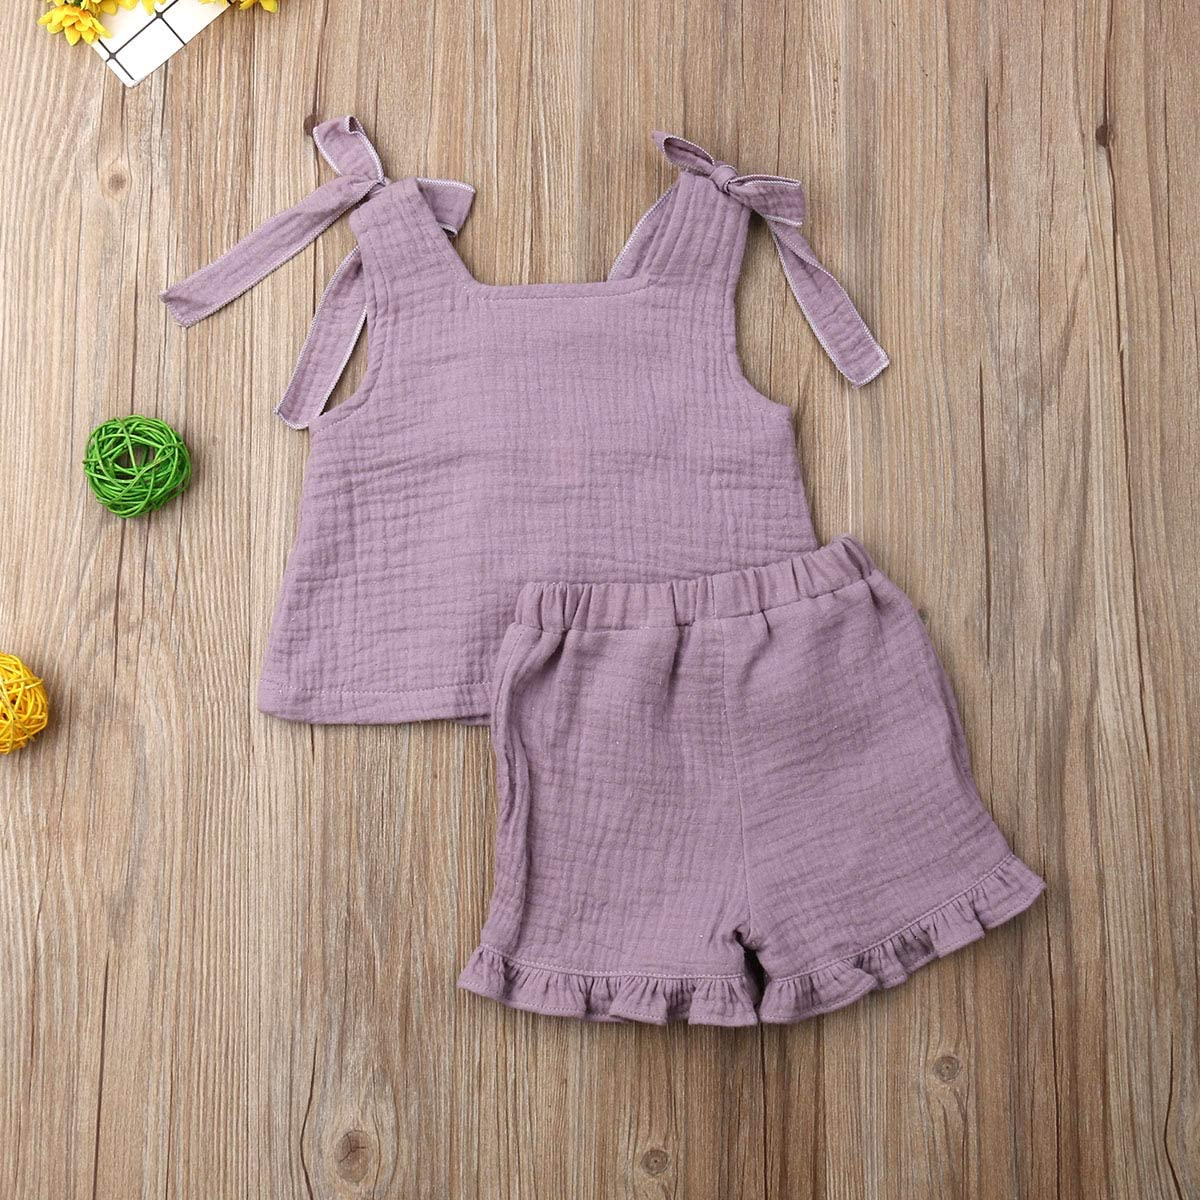 Baby Girls Cotton Linen Blend Straps Top and Bubble Shorts Ruffle Outfit Set